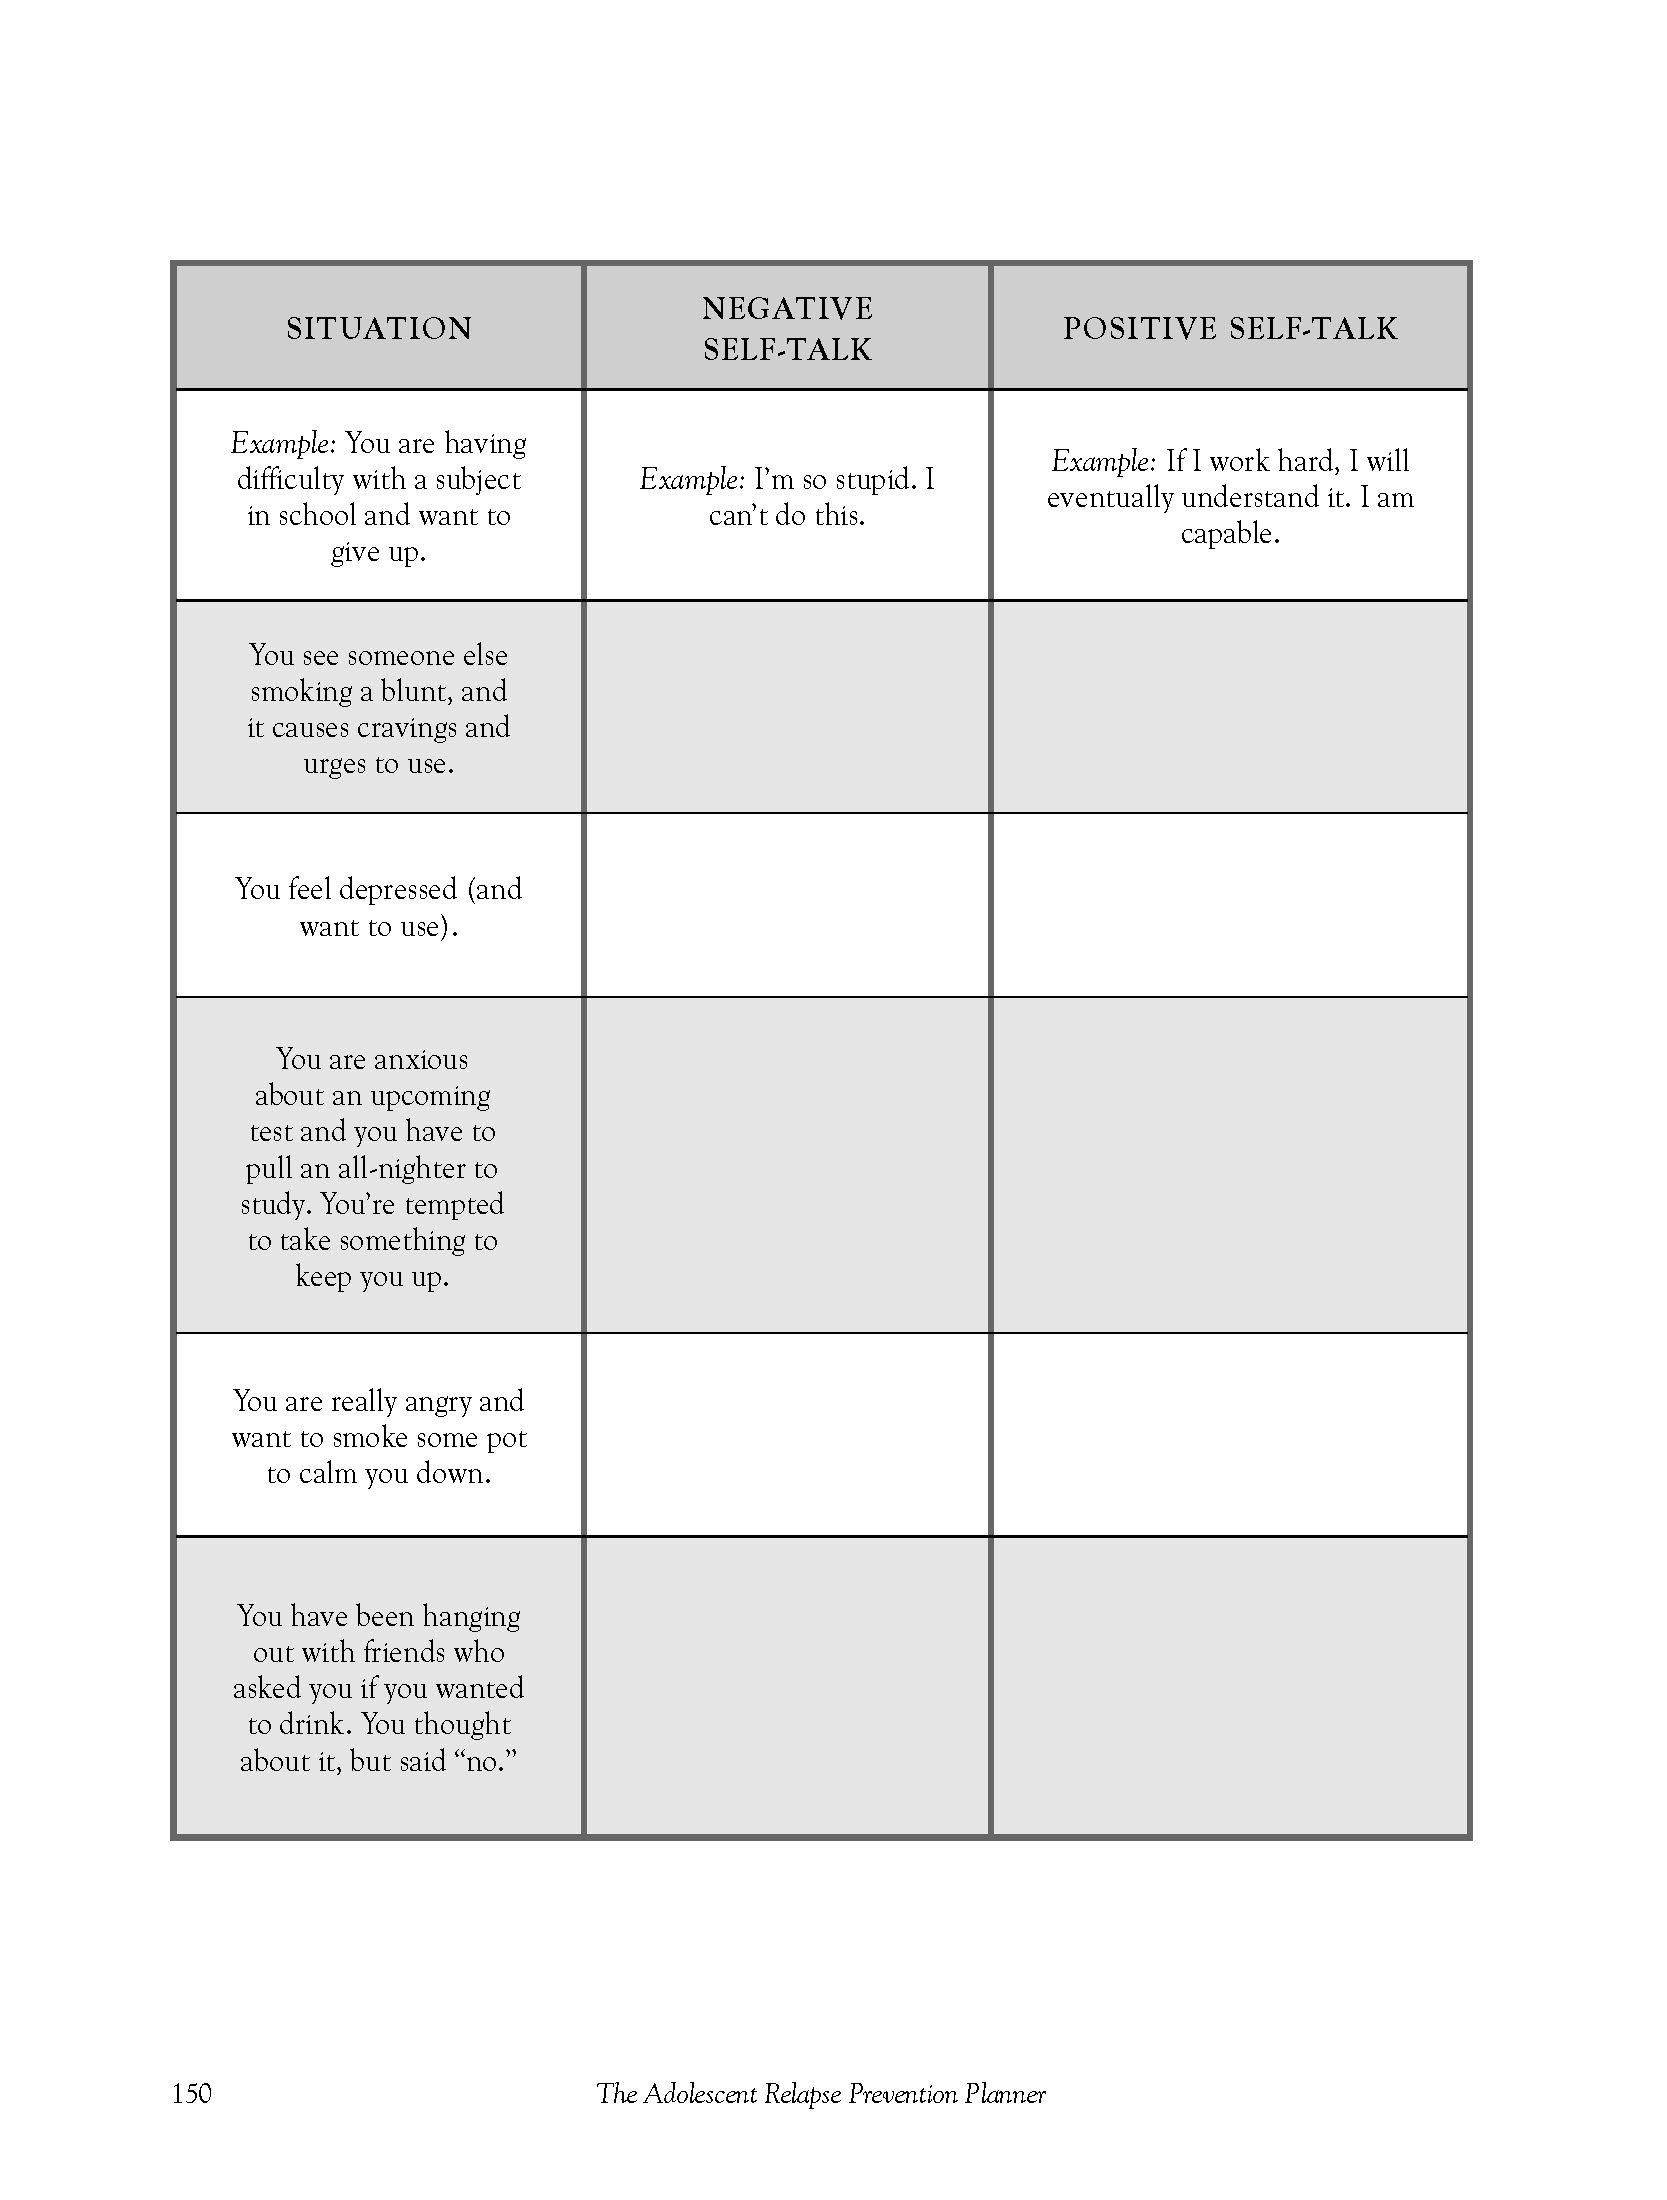 worksheet Cbt Worksheets a multi use exercise worksheet on self talking taken from the adolescent